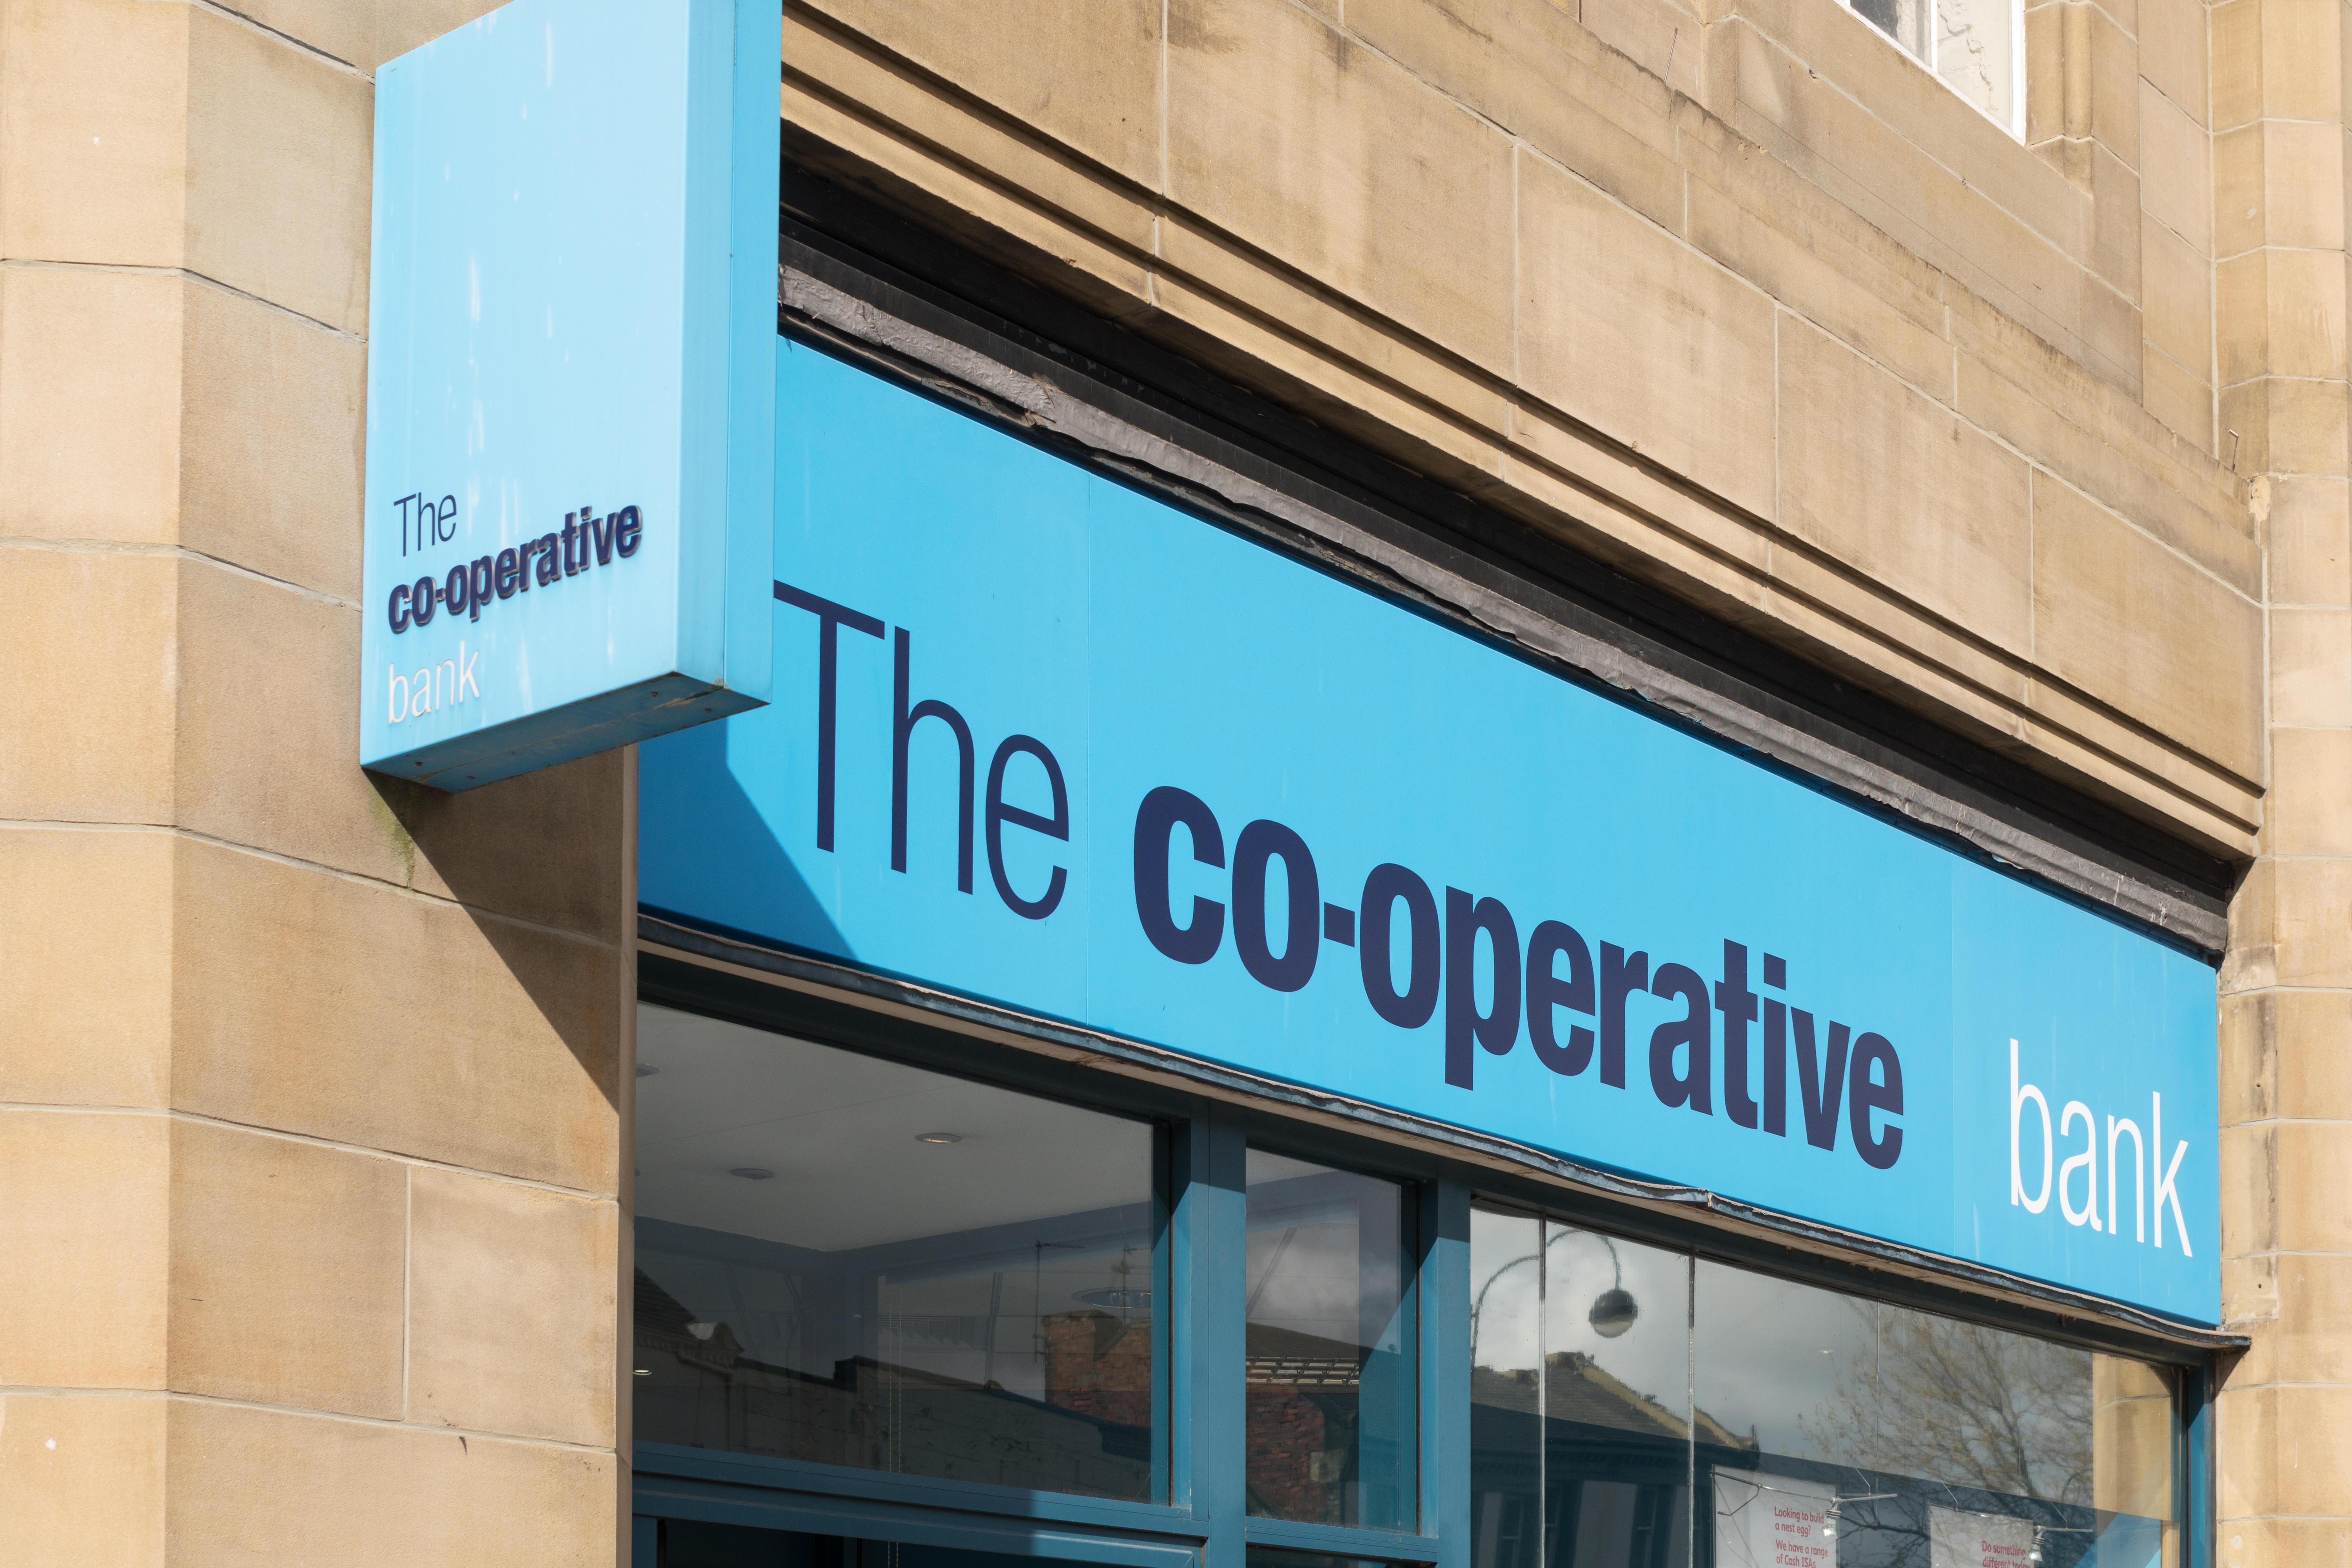 The Co-operative Bank's app and website is down leaving customers unable to access their accounts